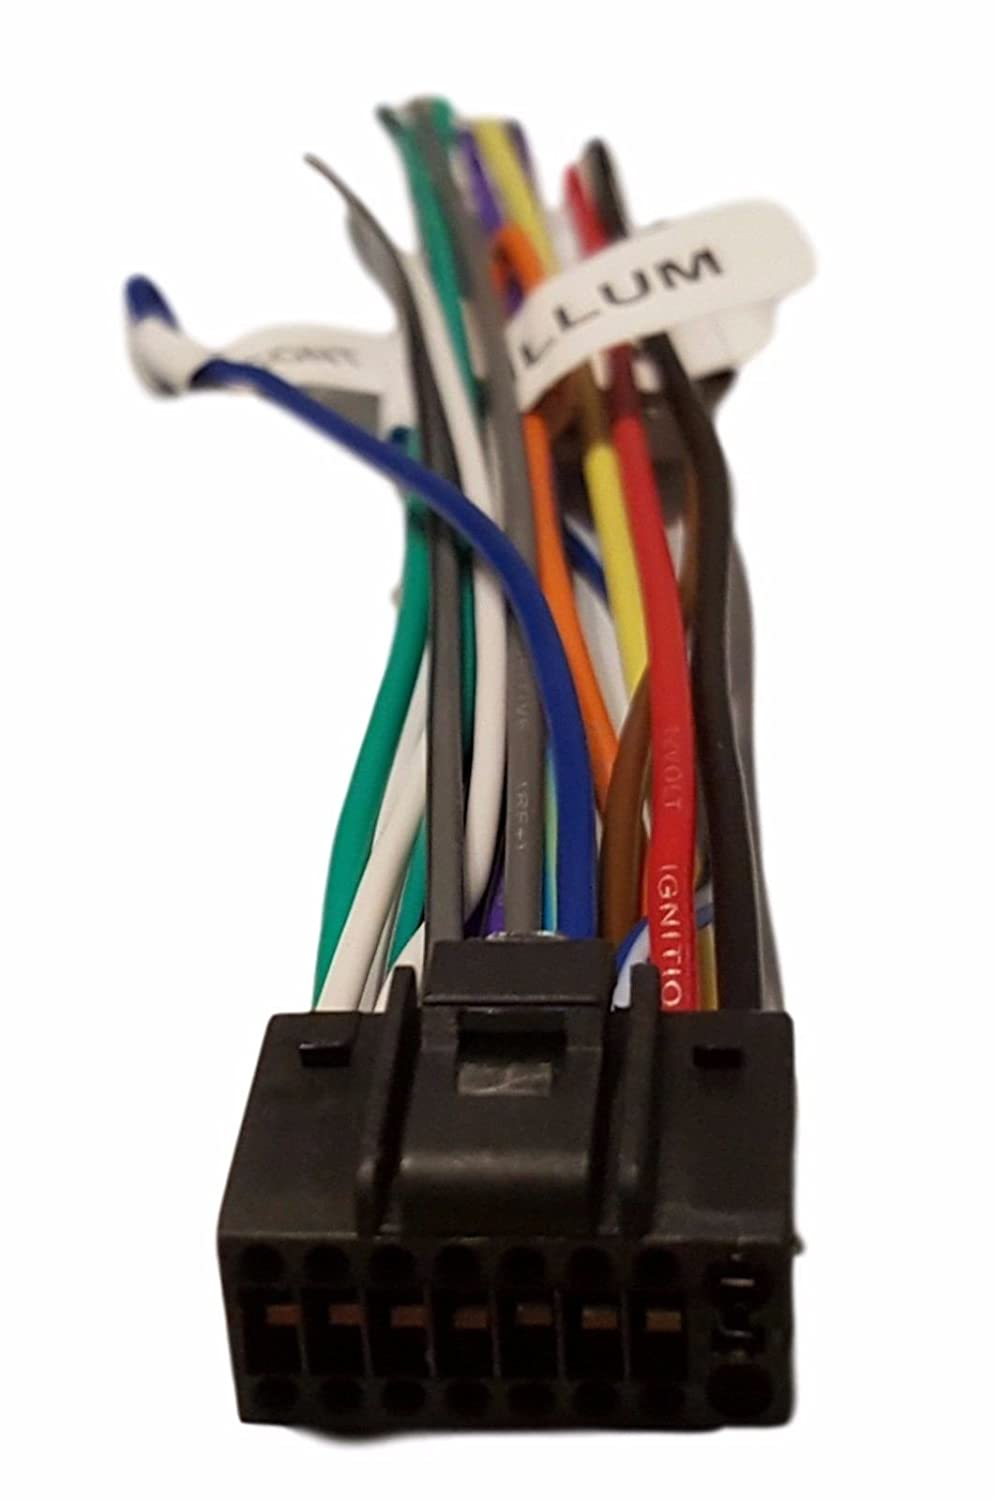 Wiring Harness For Kenwood Dnx891hd